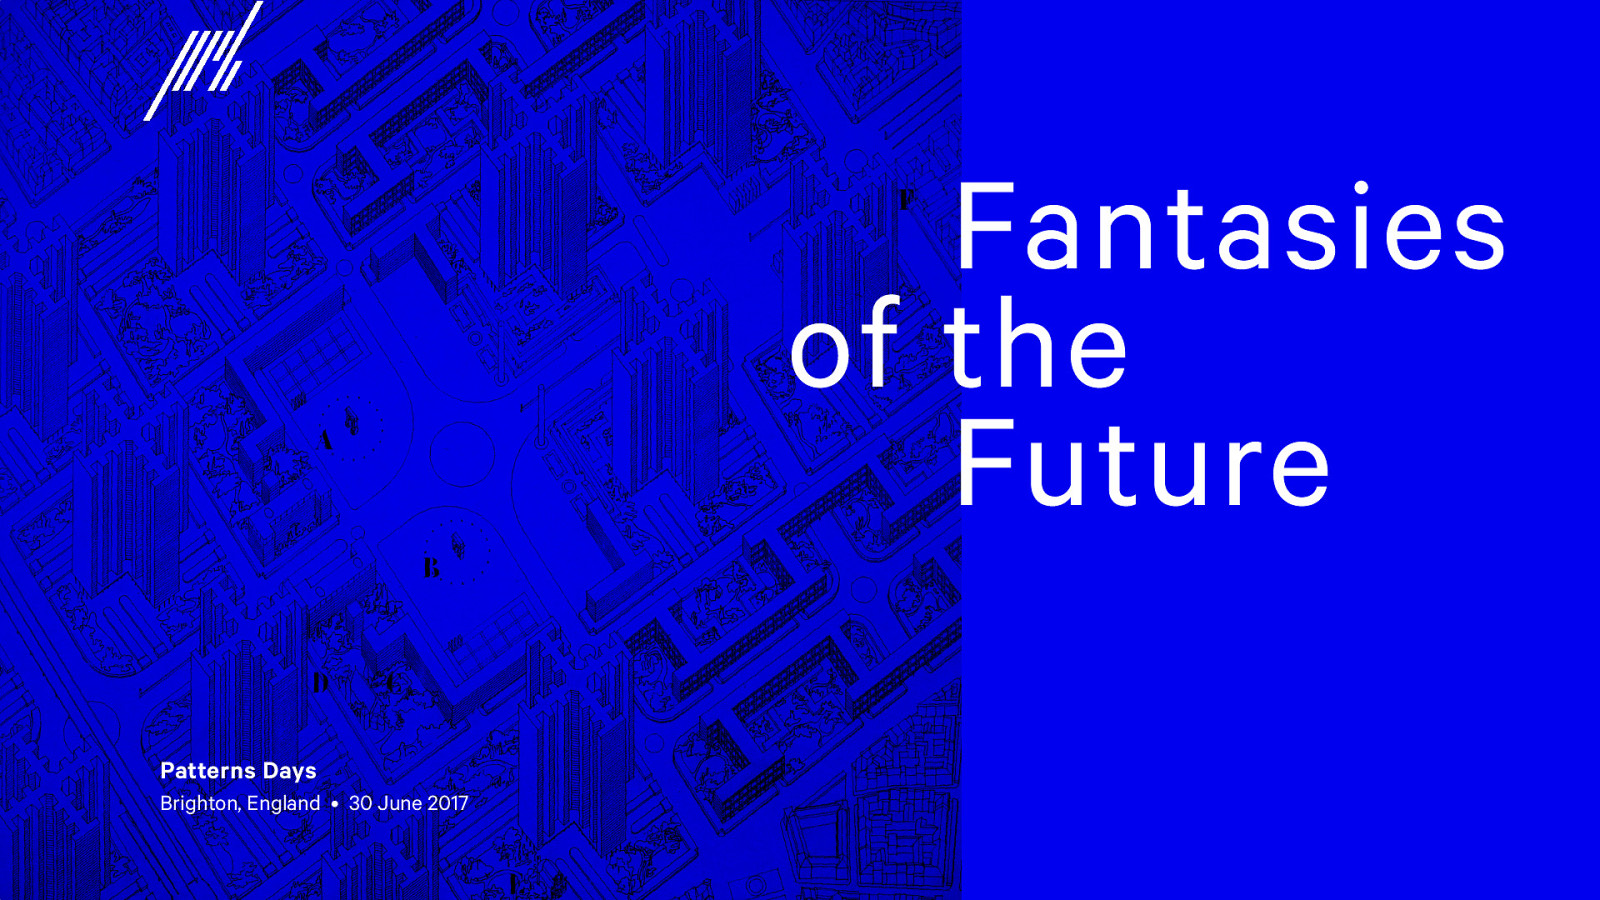 Fantasies of the Future